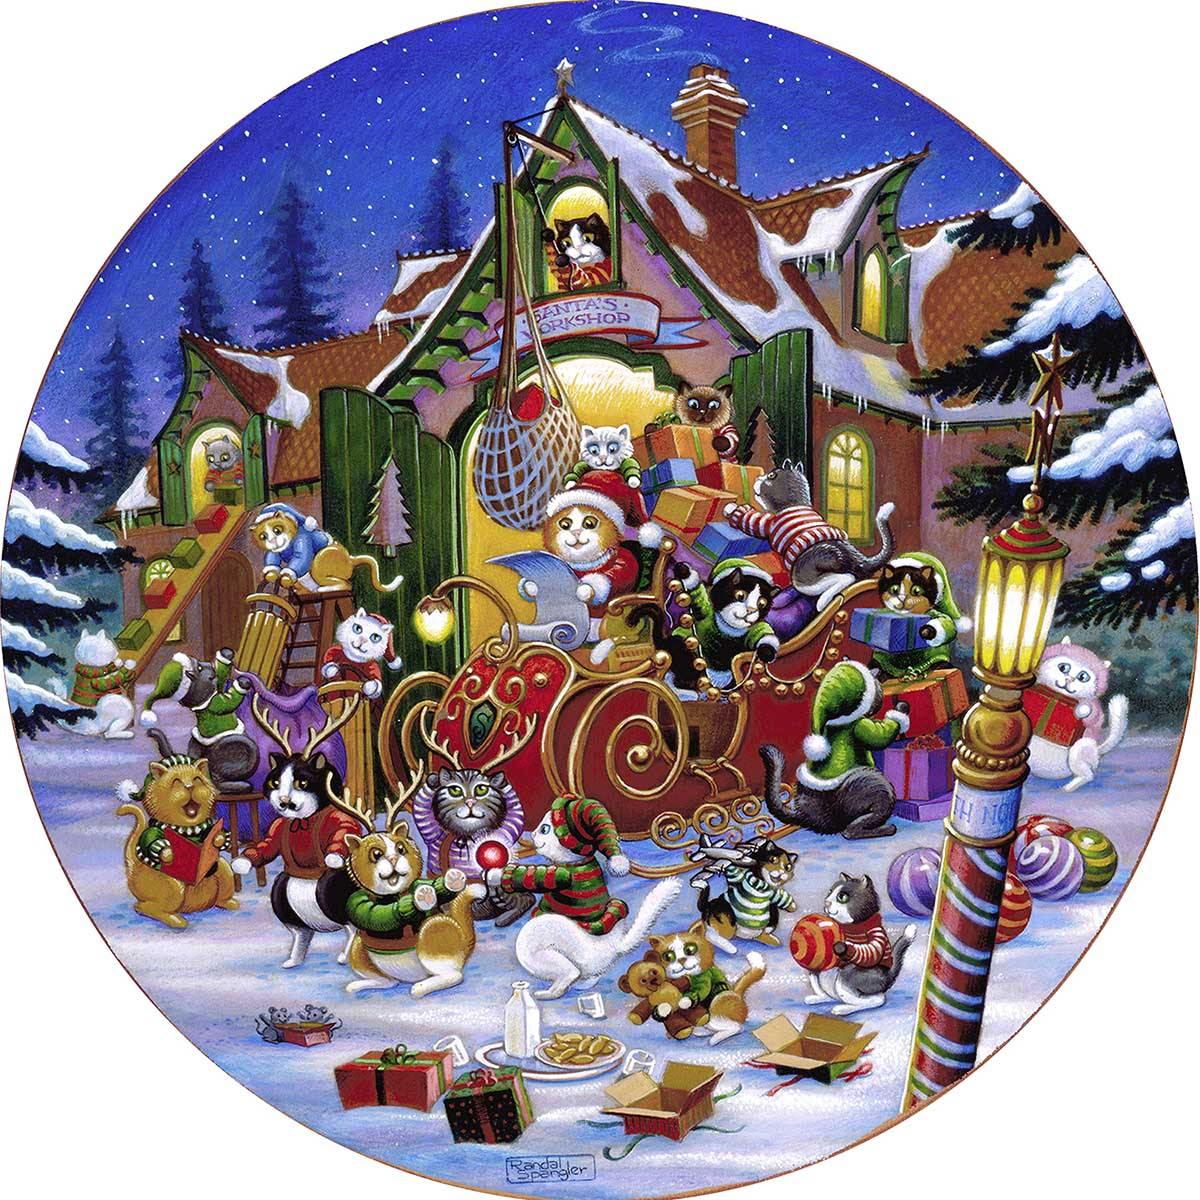 Here comes Santa Paws Cats Round Jigsaw Puzzle